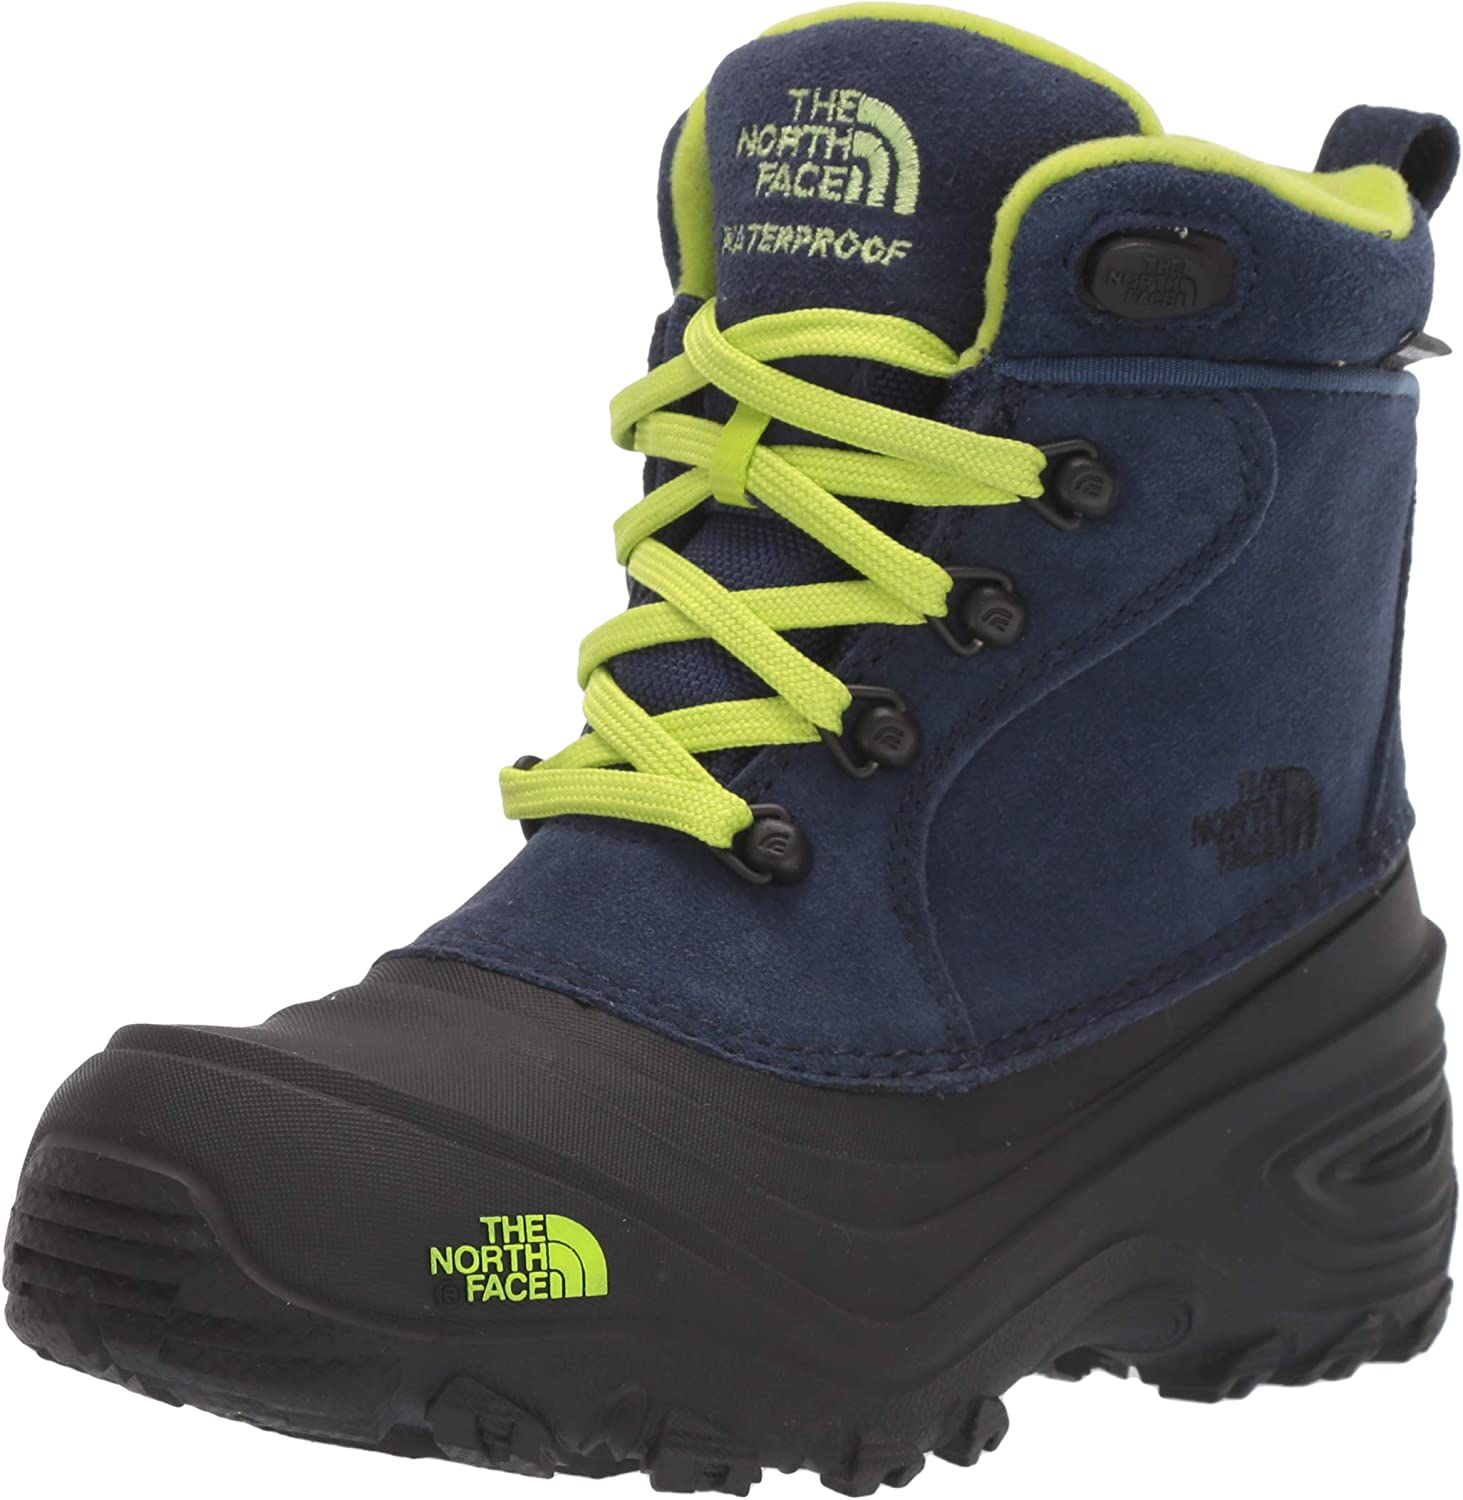 High Rise Hiking Boots